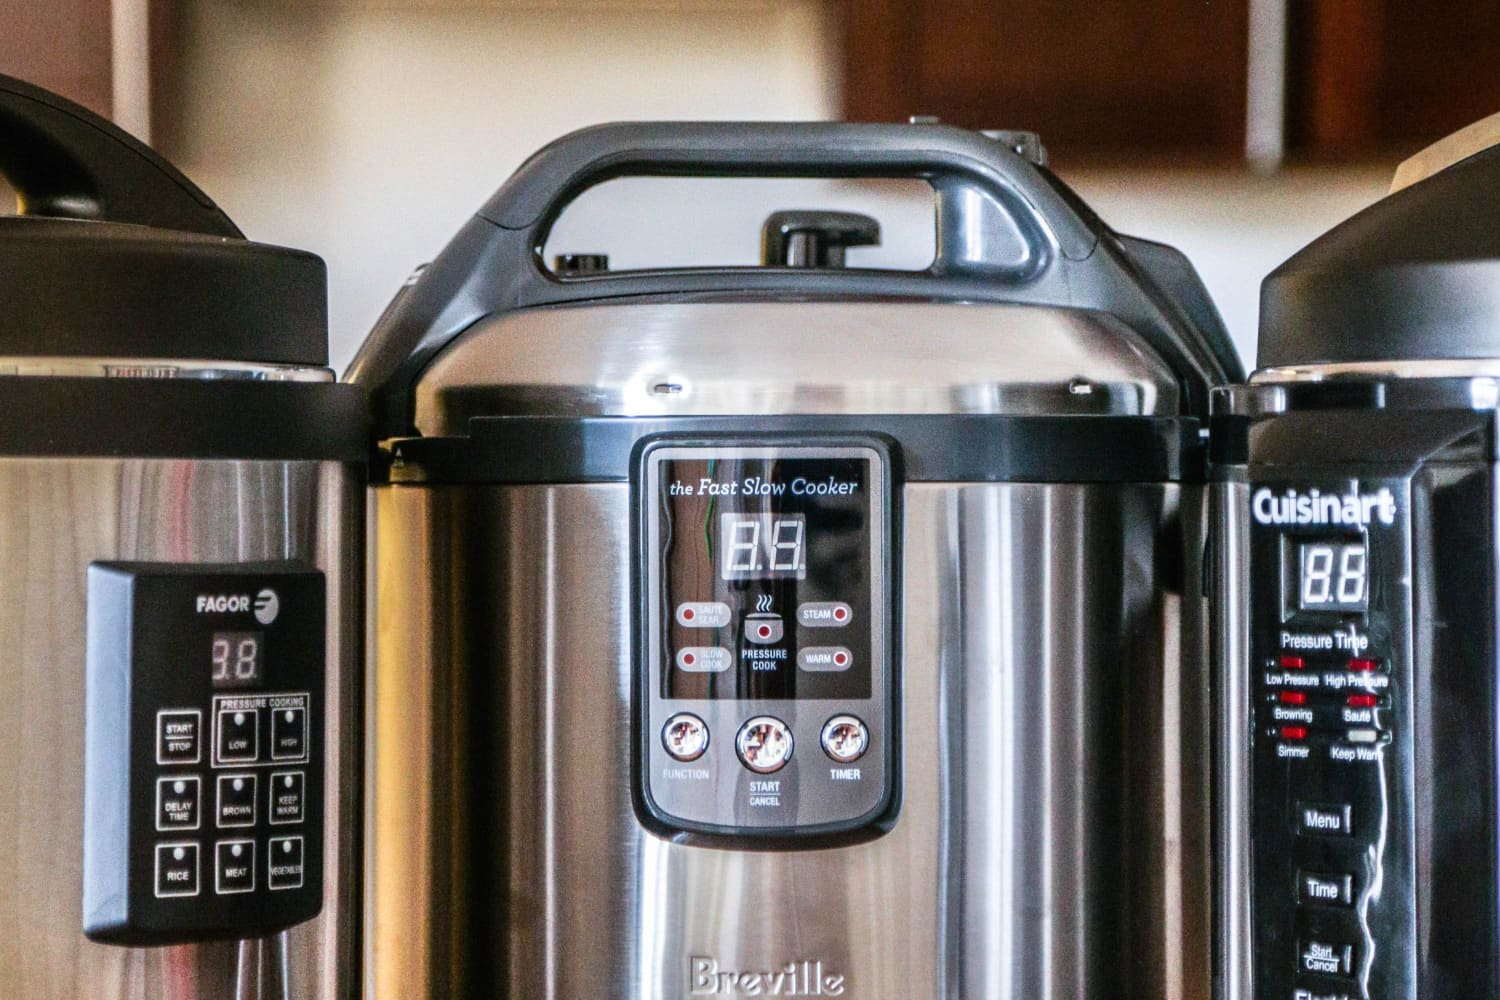 Stainless steel pressure cookers are more recommended since many cheap aluminium models can be easily deformed. Source:The Kitchn